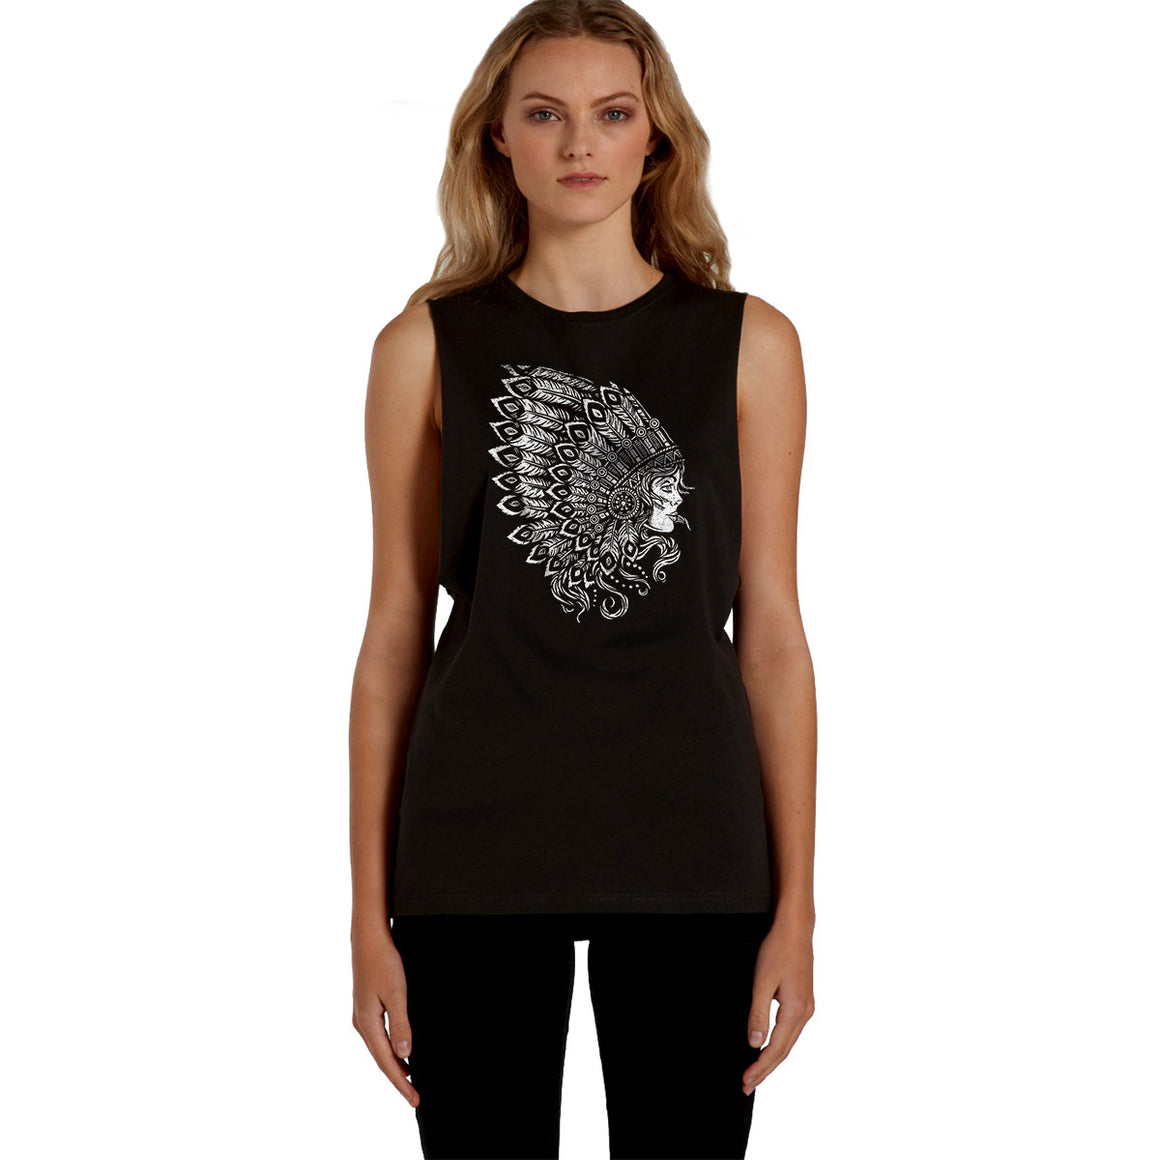 Indian Warrior Princess Womens / Unisex Muscle Tank